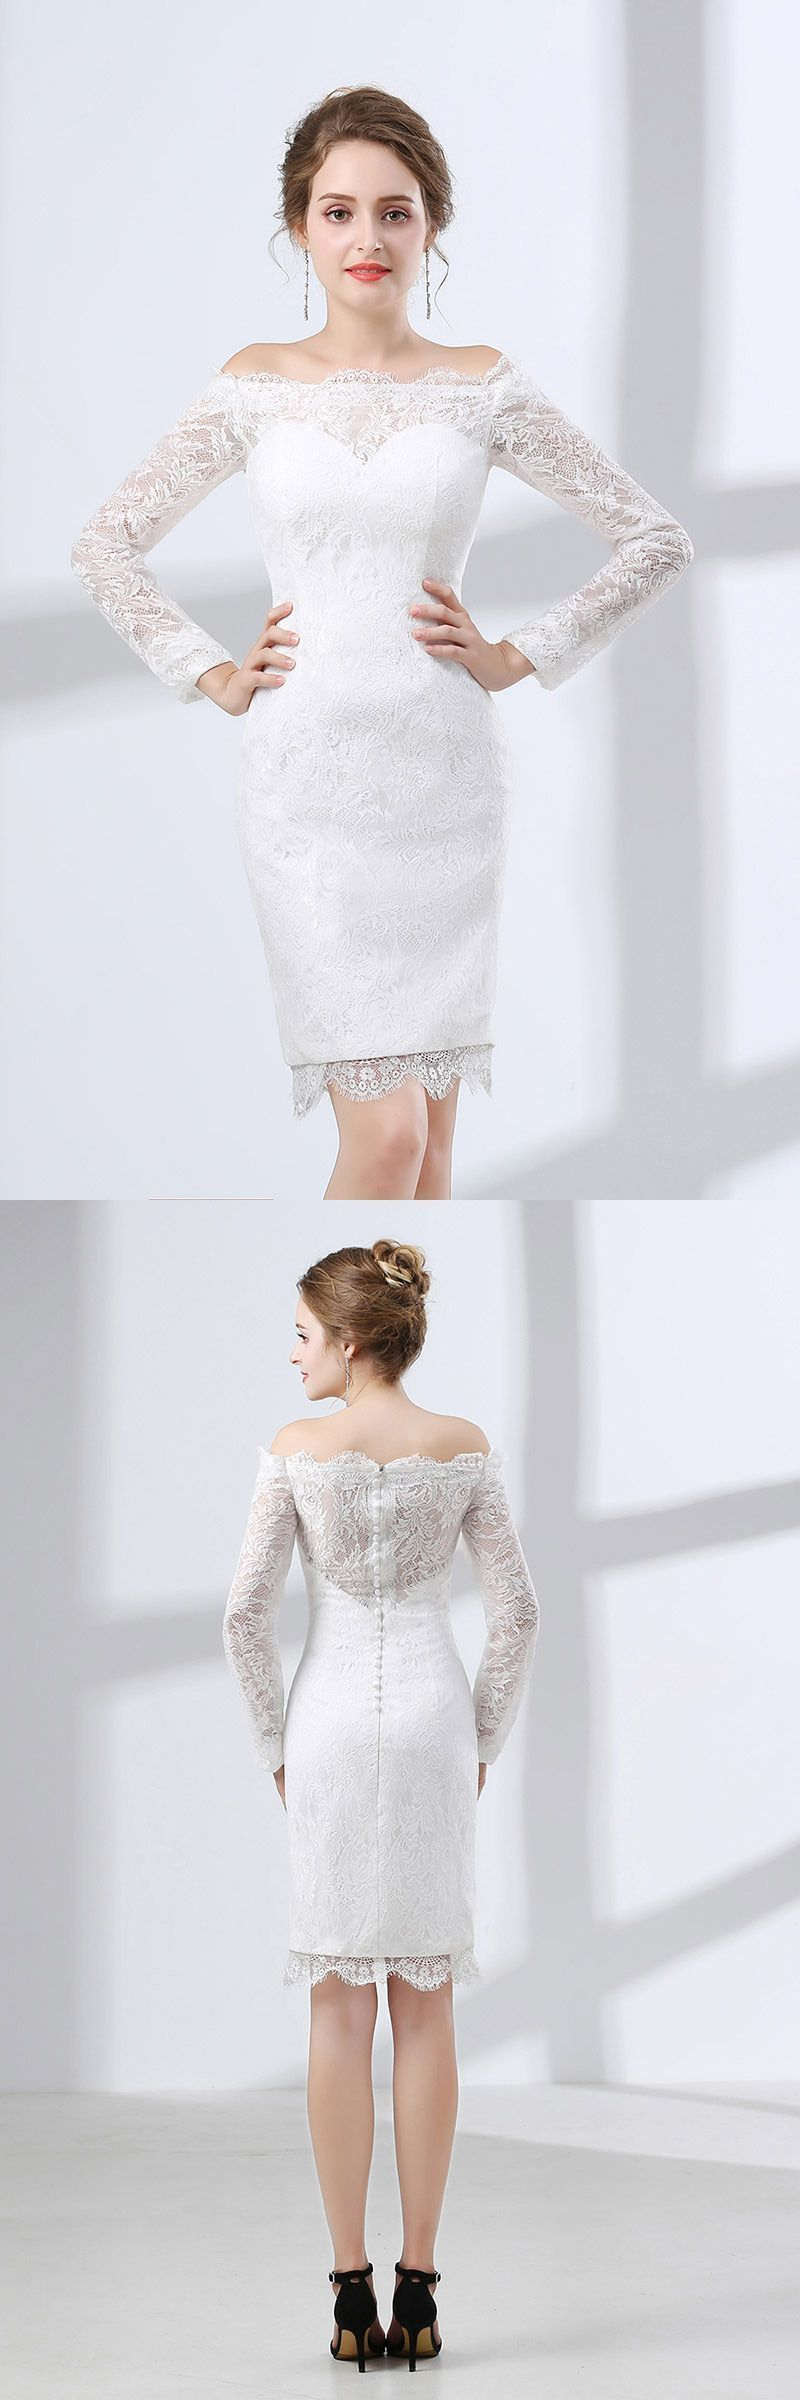 Off white short wedding dresses  Only  Short Wedding Dresses All Lace Cocktail Bridal Dress With